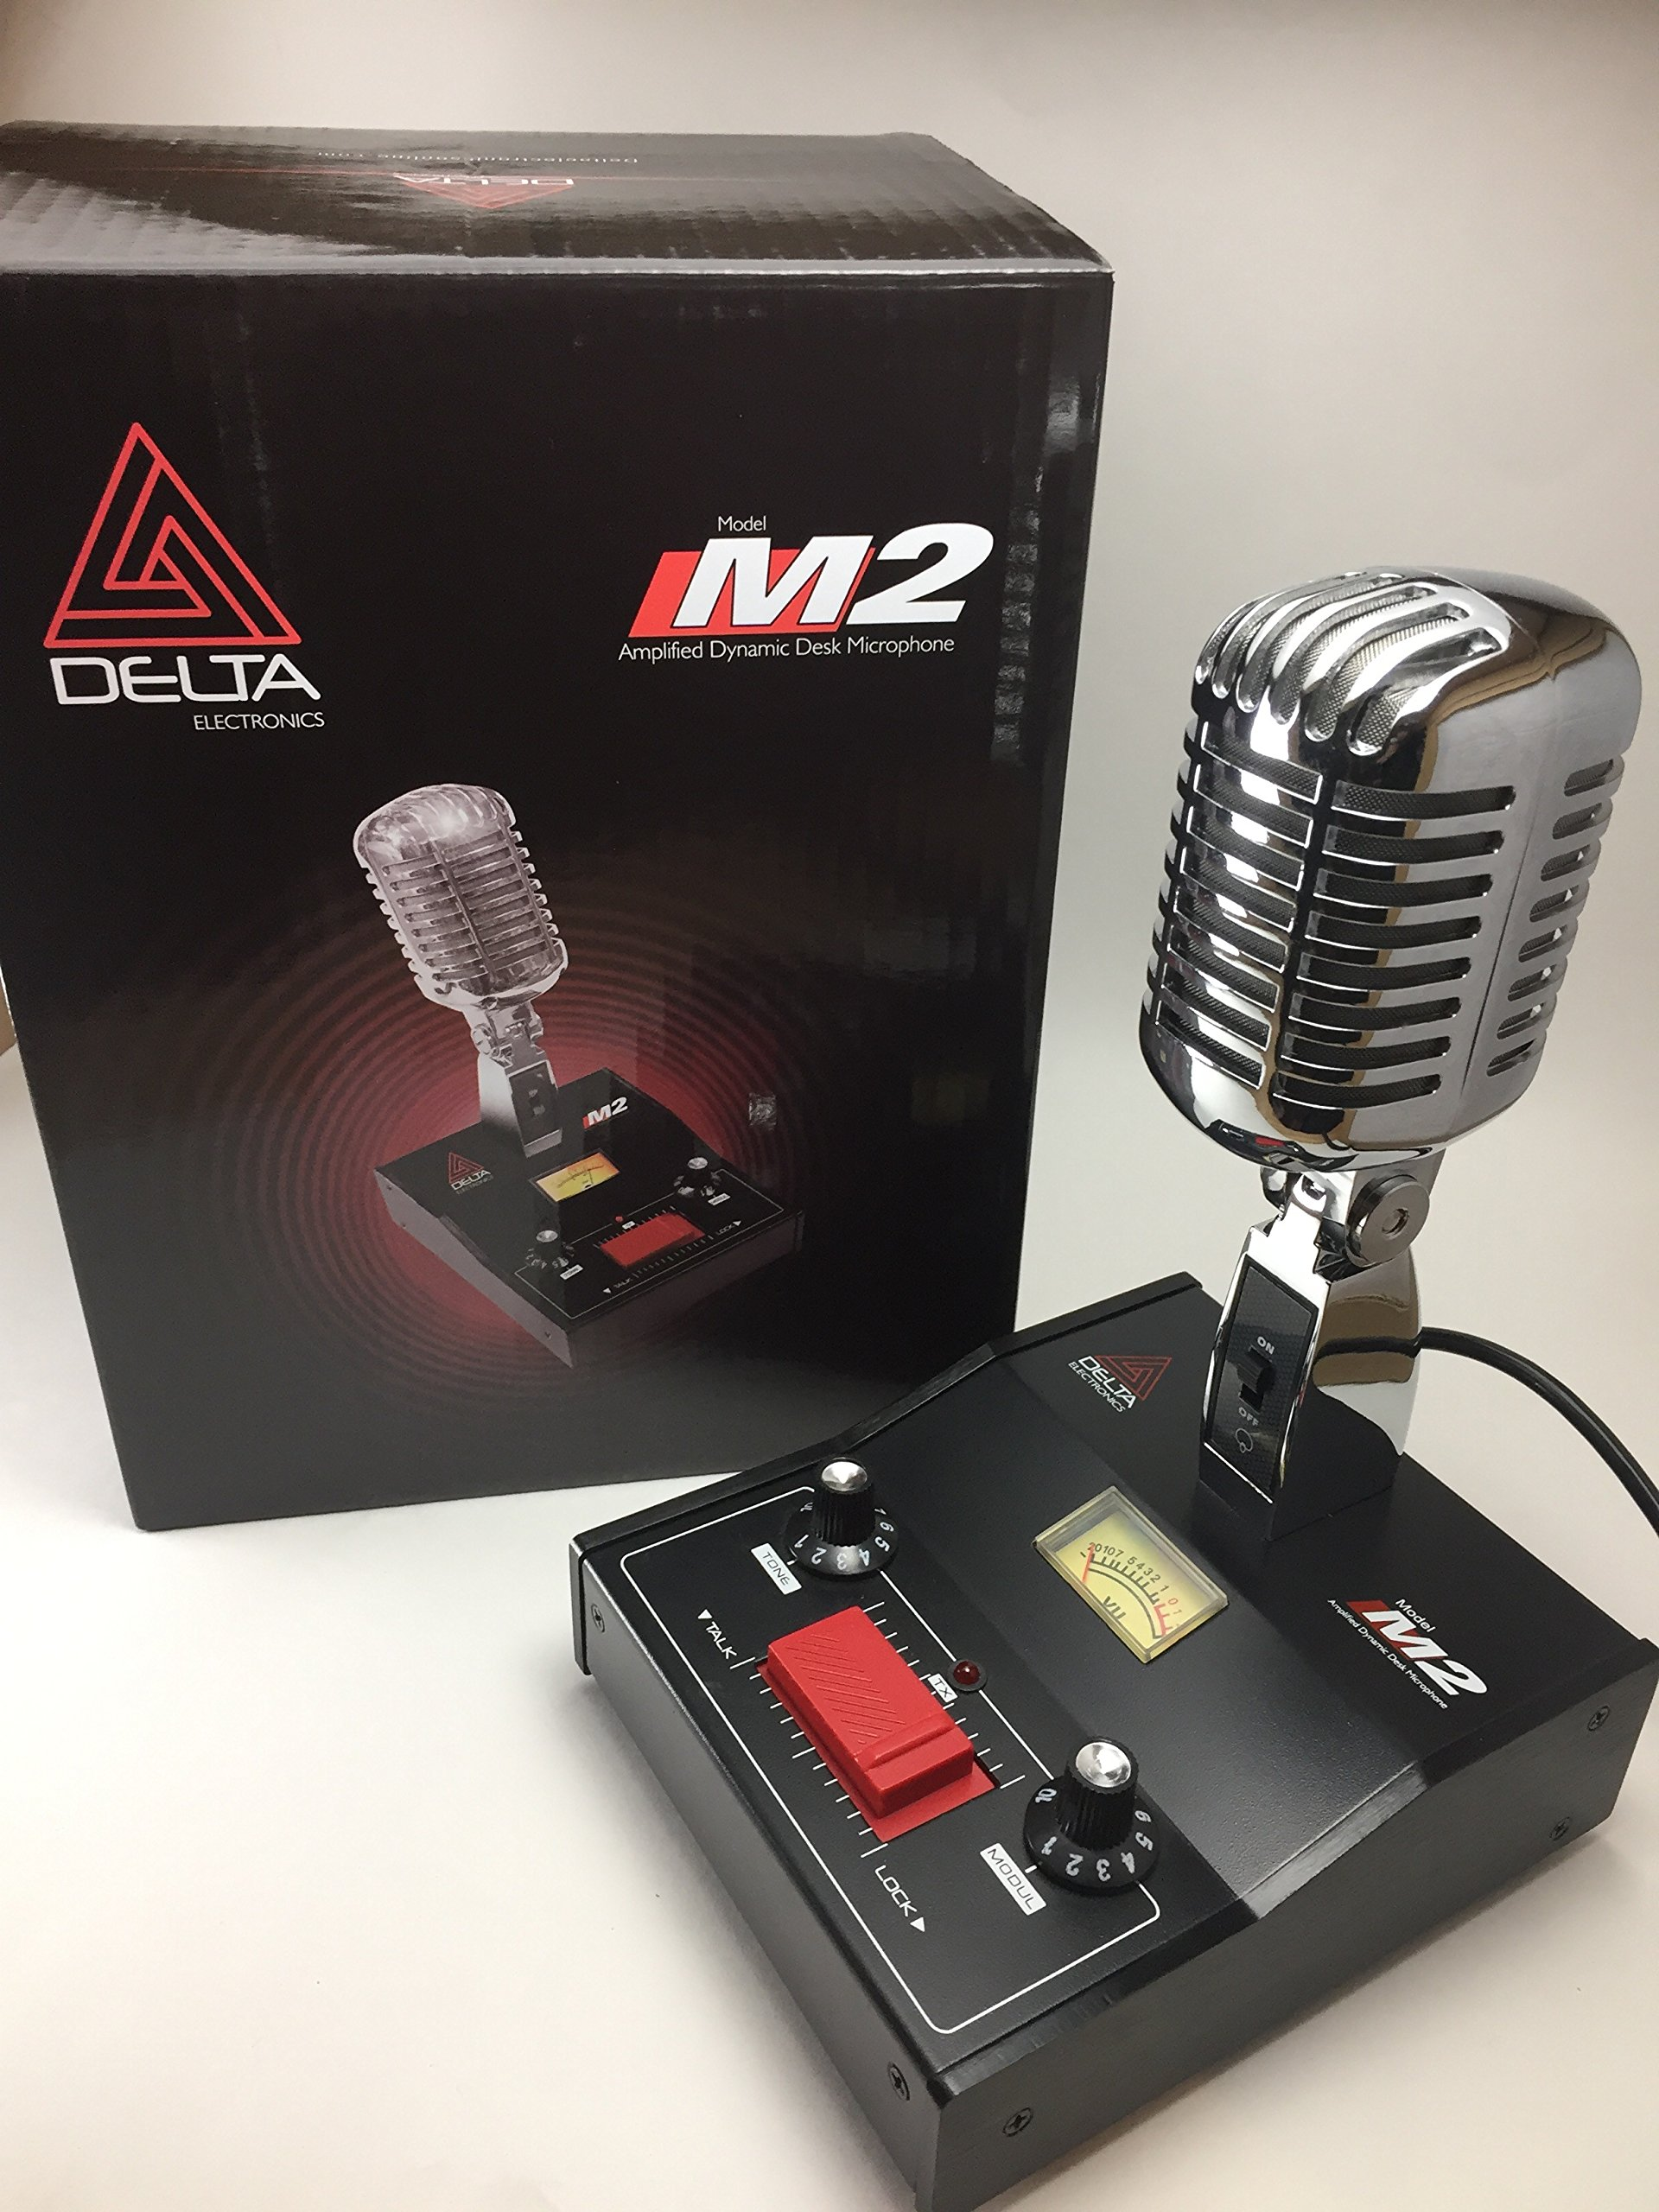 DELTA AMPLIFIED DYNAMIC POWER MICROPHONE